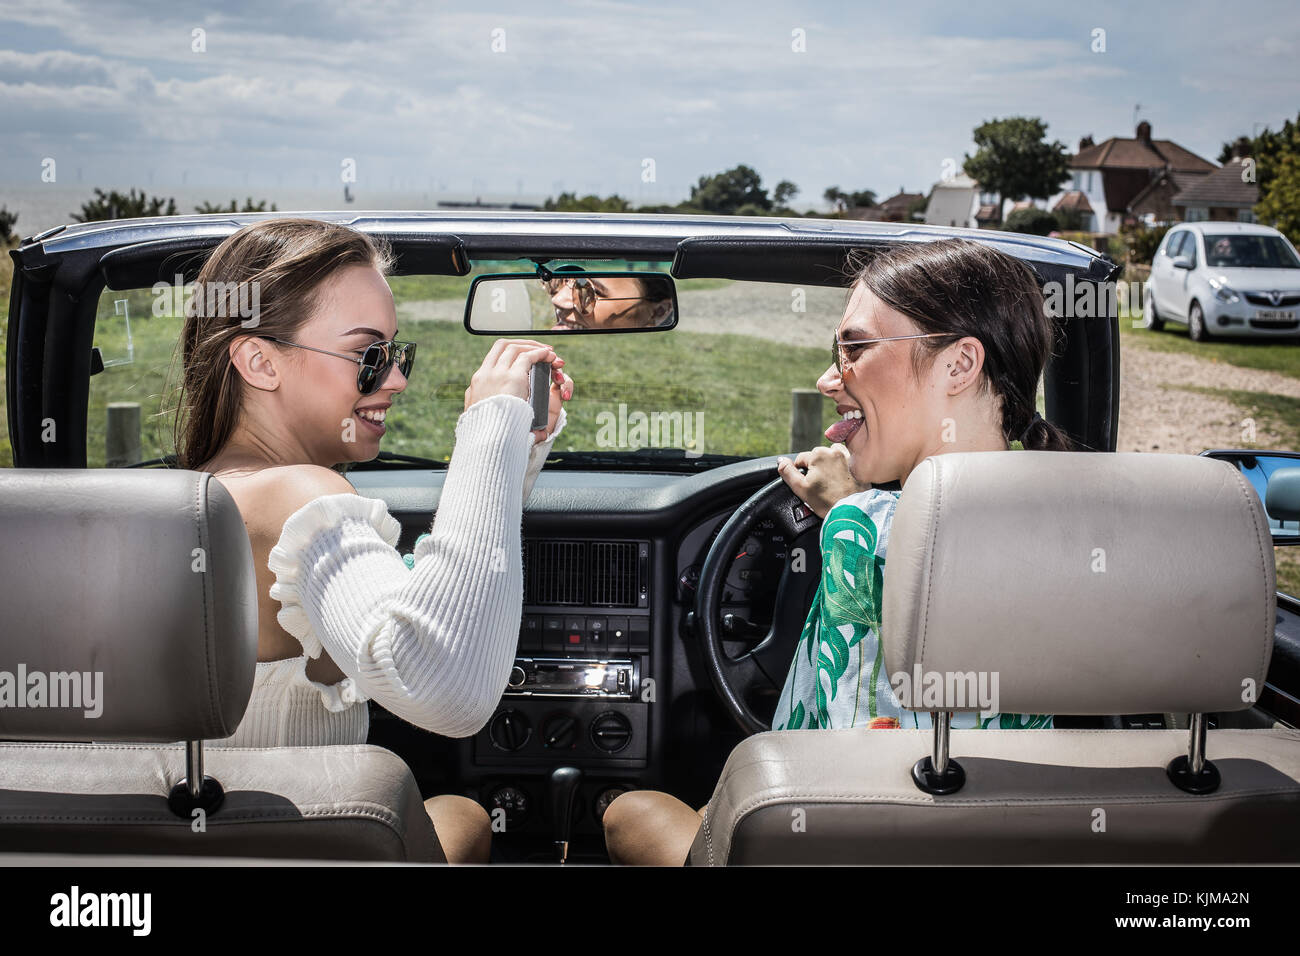 Two beautiful young women on a summer road trip together in a convertible car. - Stock Image